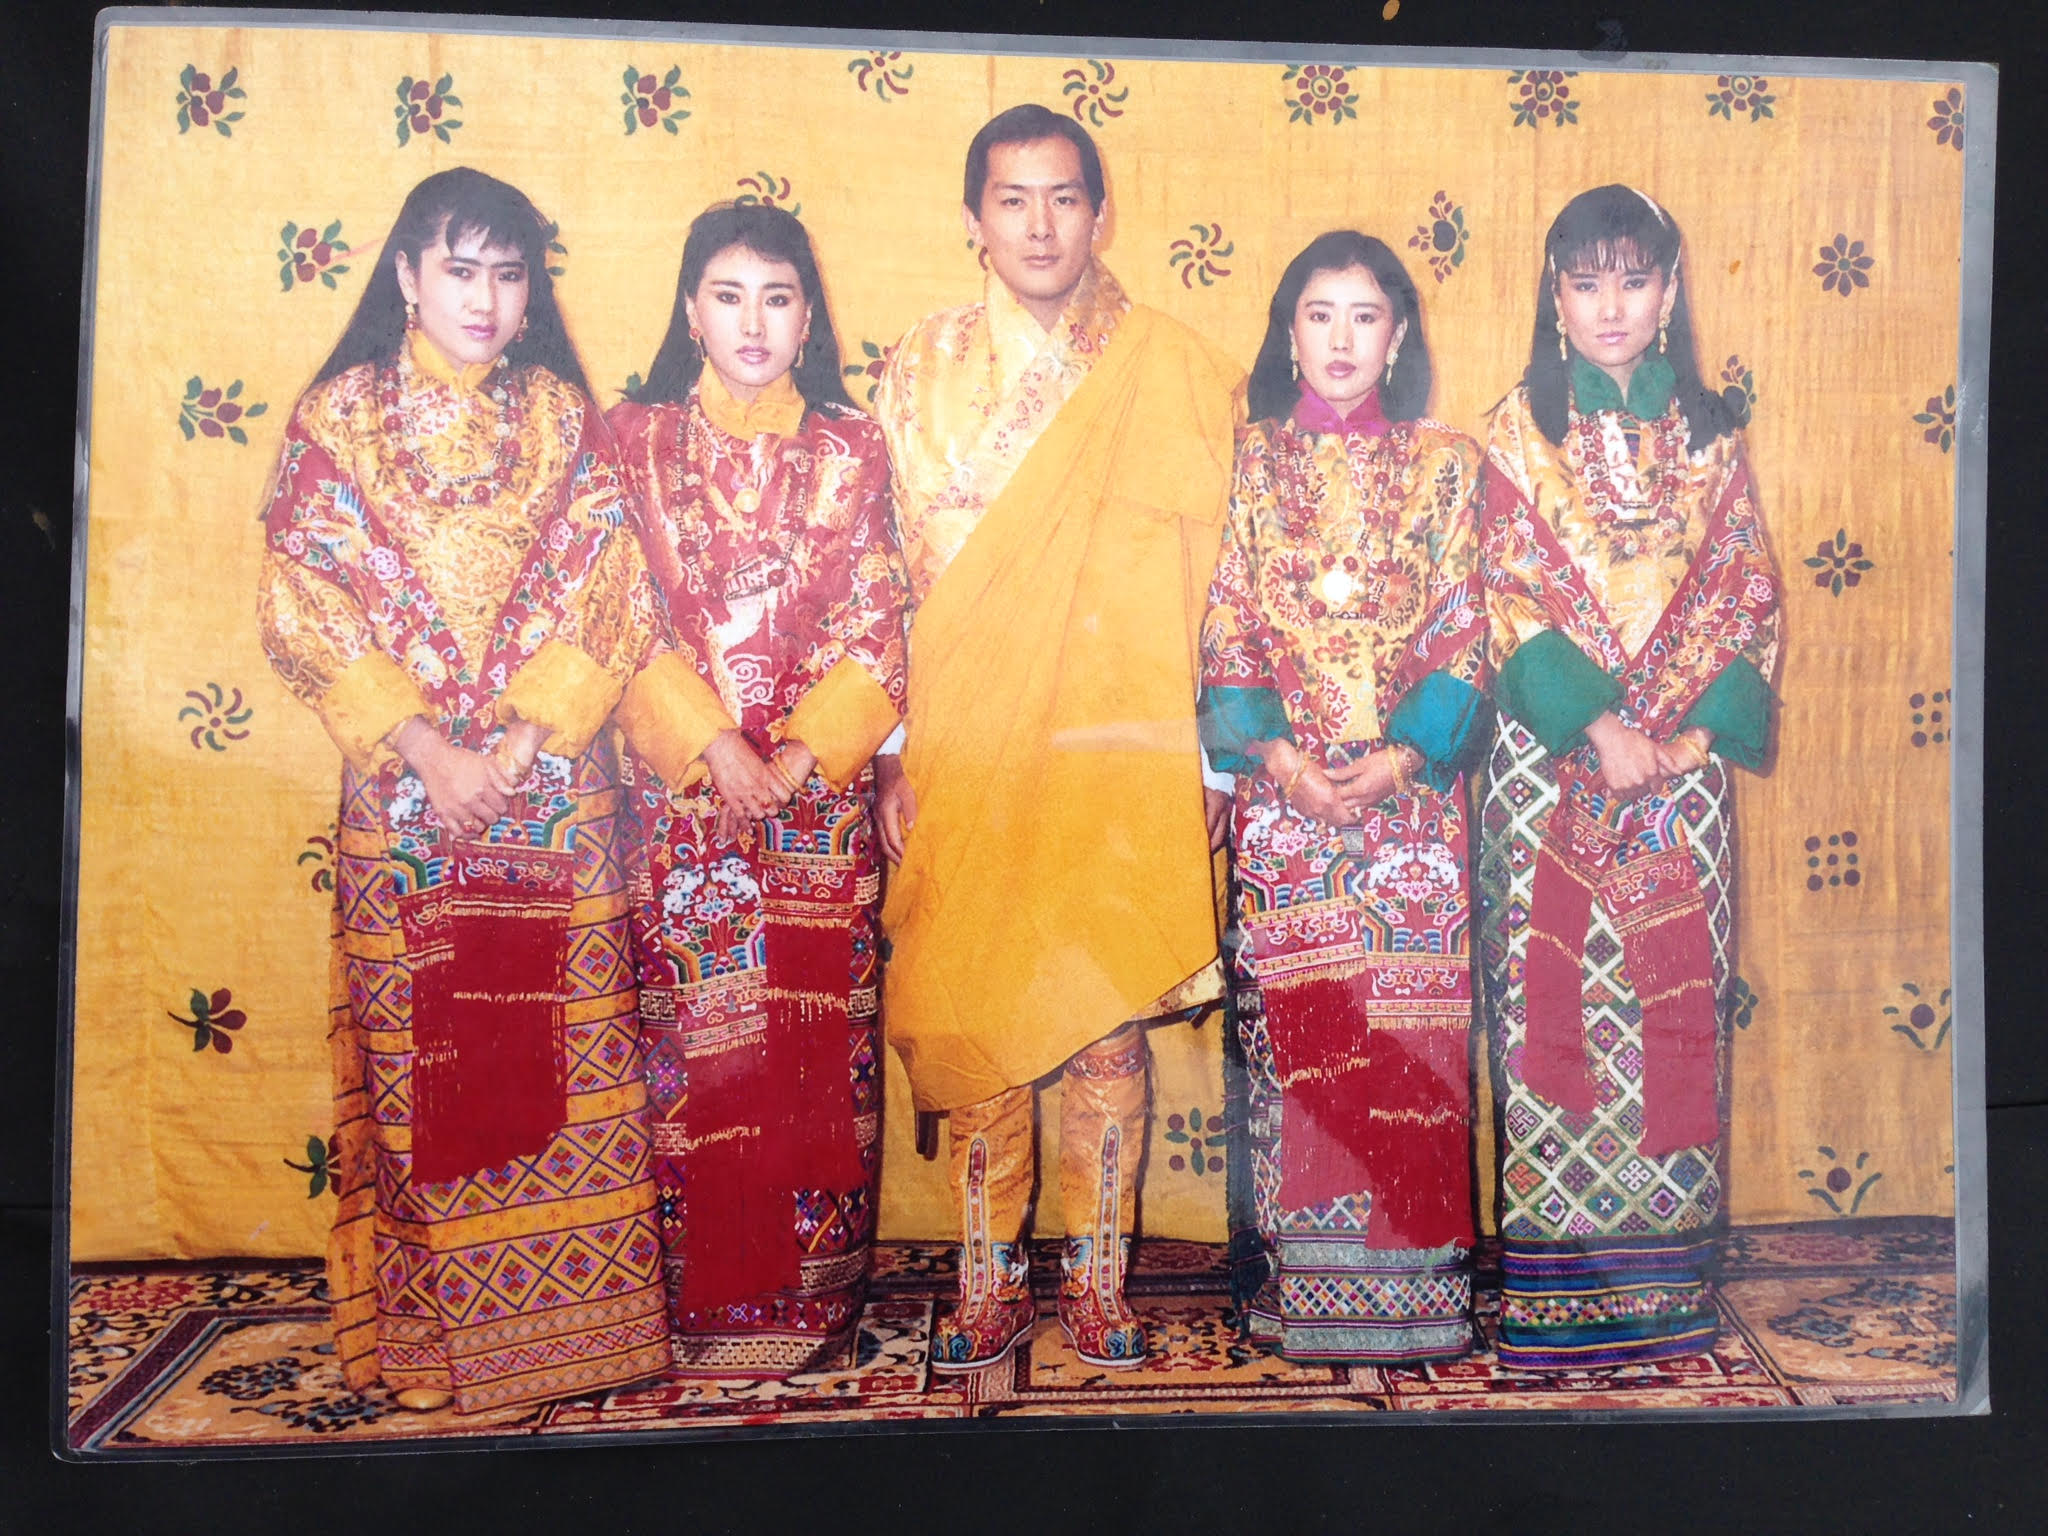 The retired king of Bhutan with his four wives, all sisters